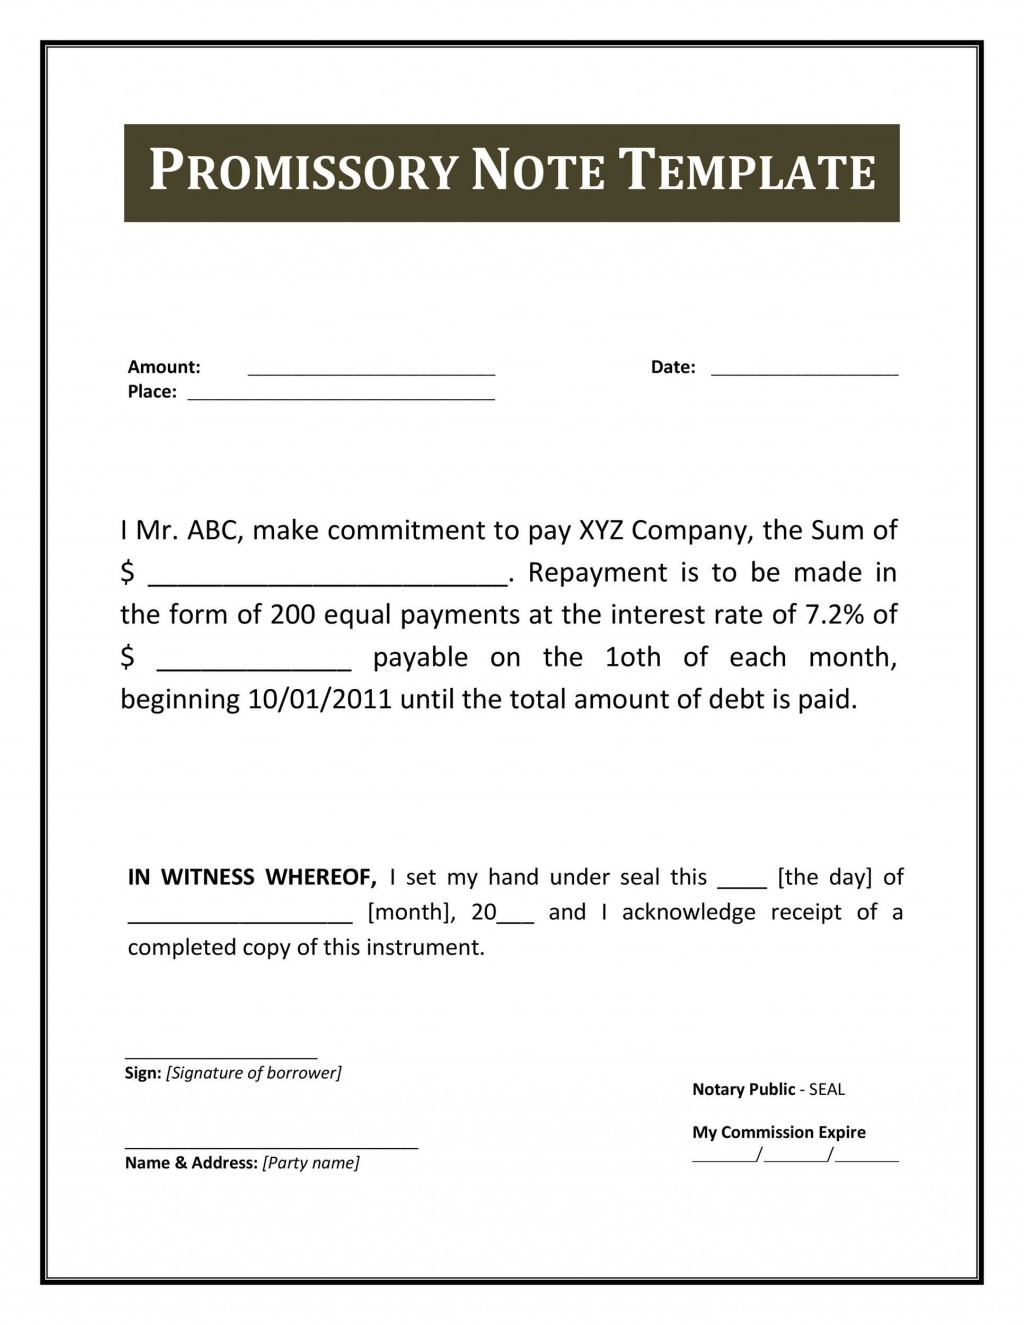 006 Staggering Real Estate Promissory Note Template Picture  Pdf The Commission Approved Earnest Money FormLarge